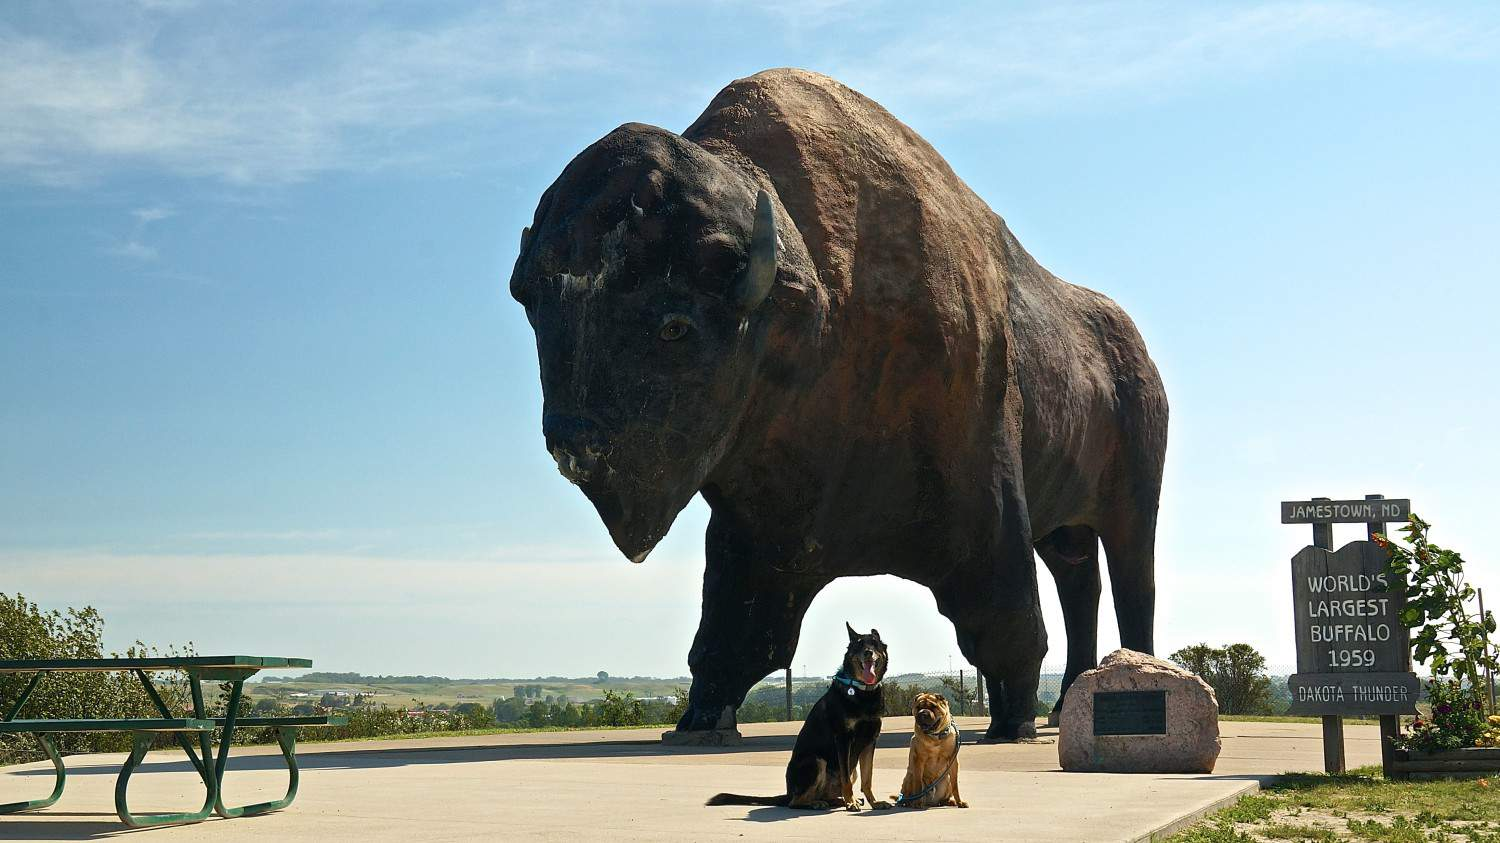 National Buffalo Museum - Jamestown, ND